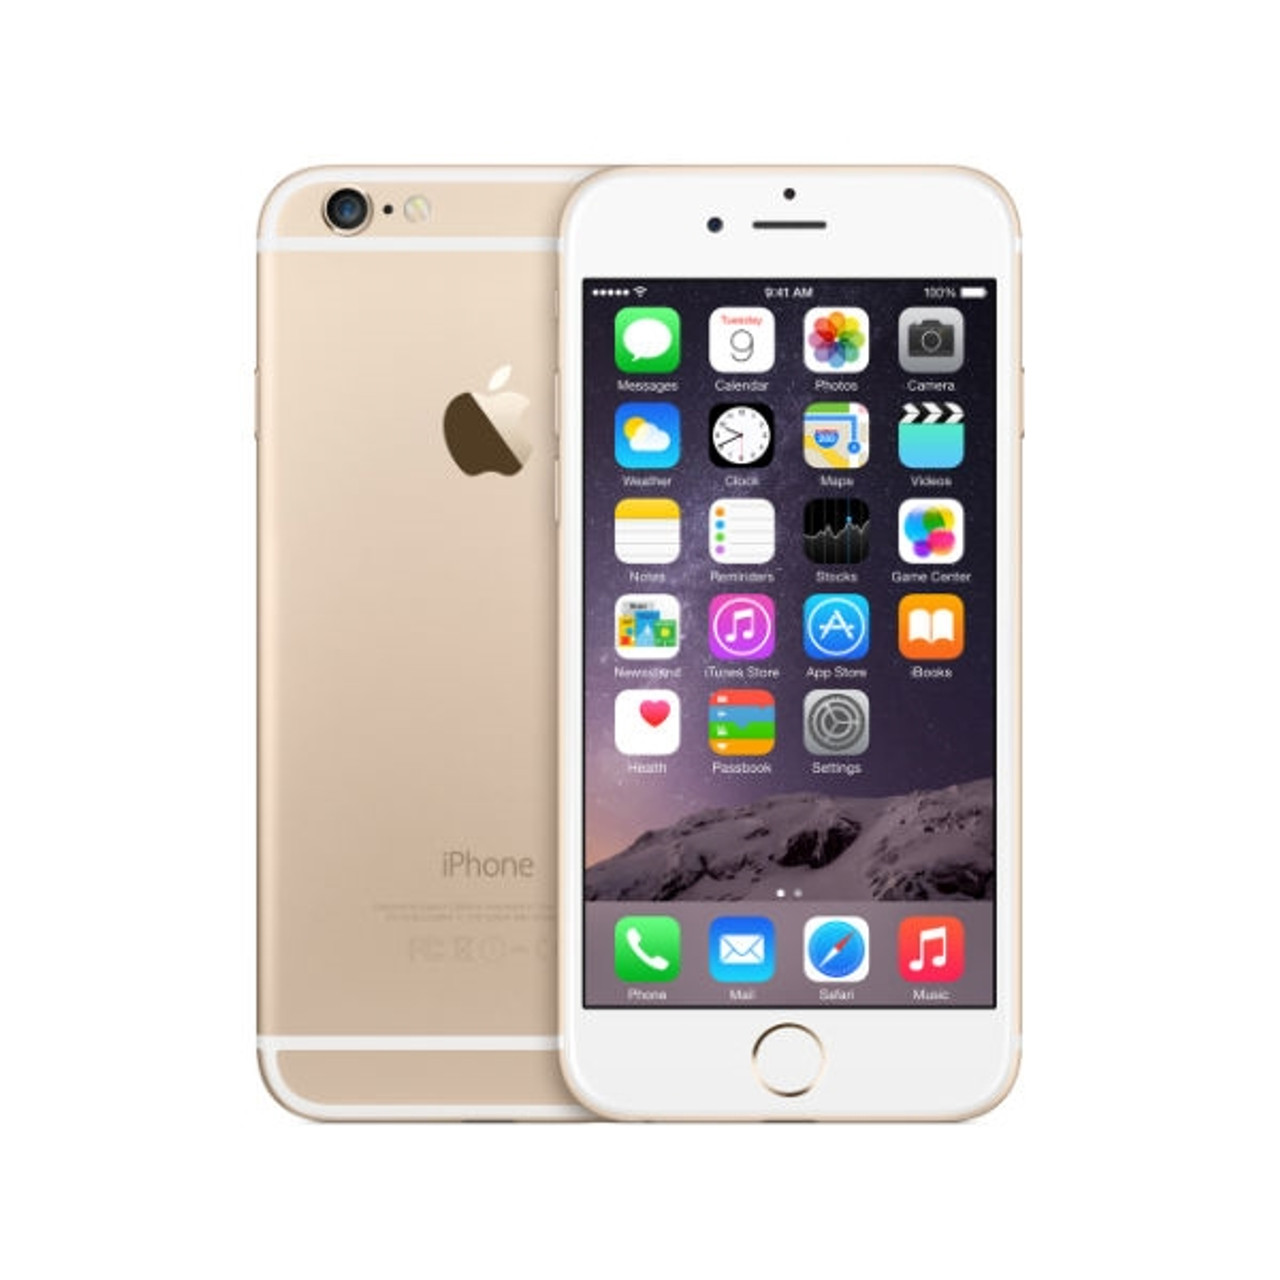 Apple iPhone 6 (Unlocked) 64GB - Gold MG5D2LL A  8eefe68e204